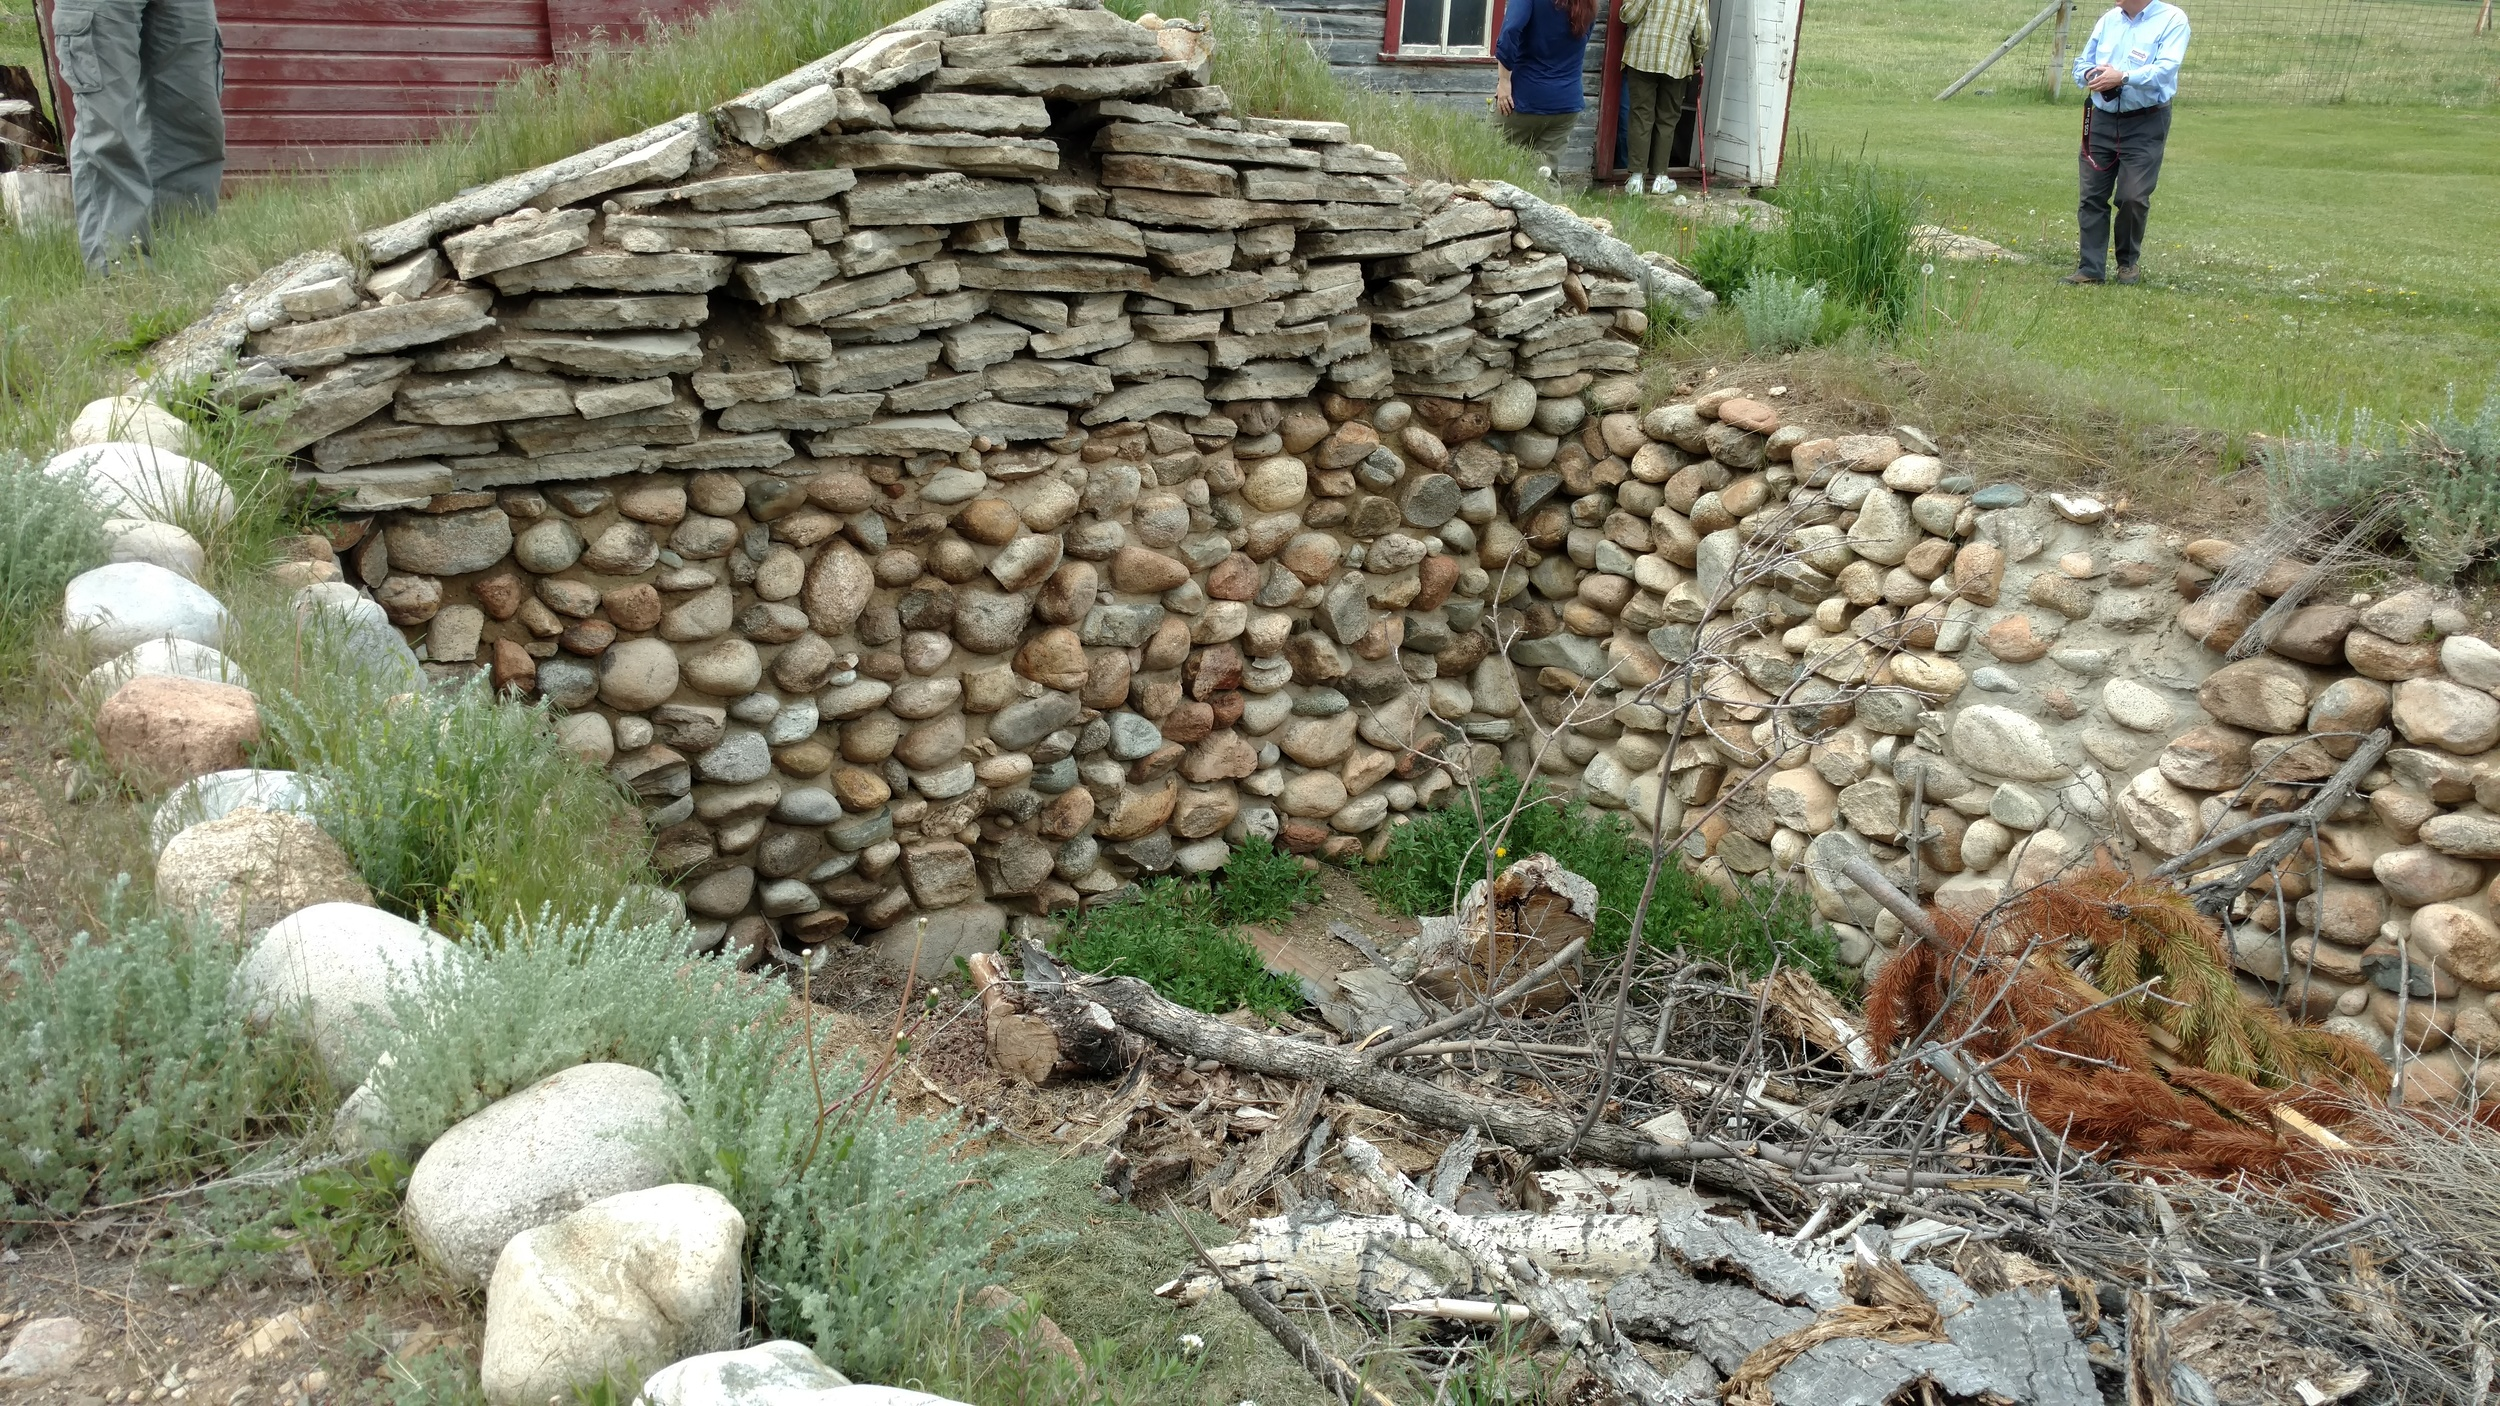 The Kero root cellar lost its roof decades ago, but the sturdy stone walls are solid. The current owner hopes to reroof the cellar someday.